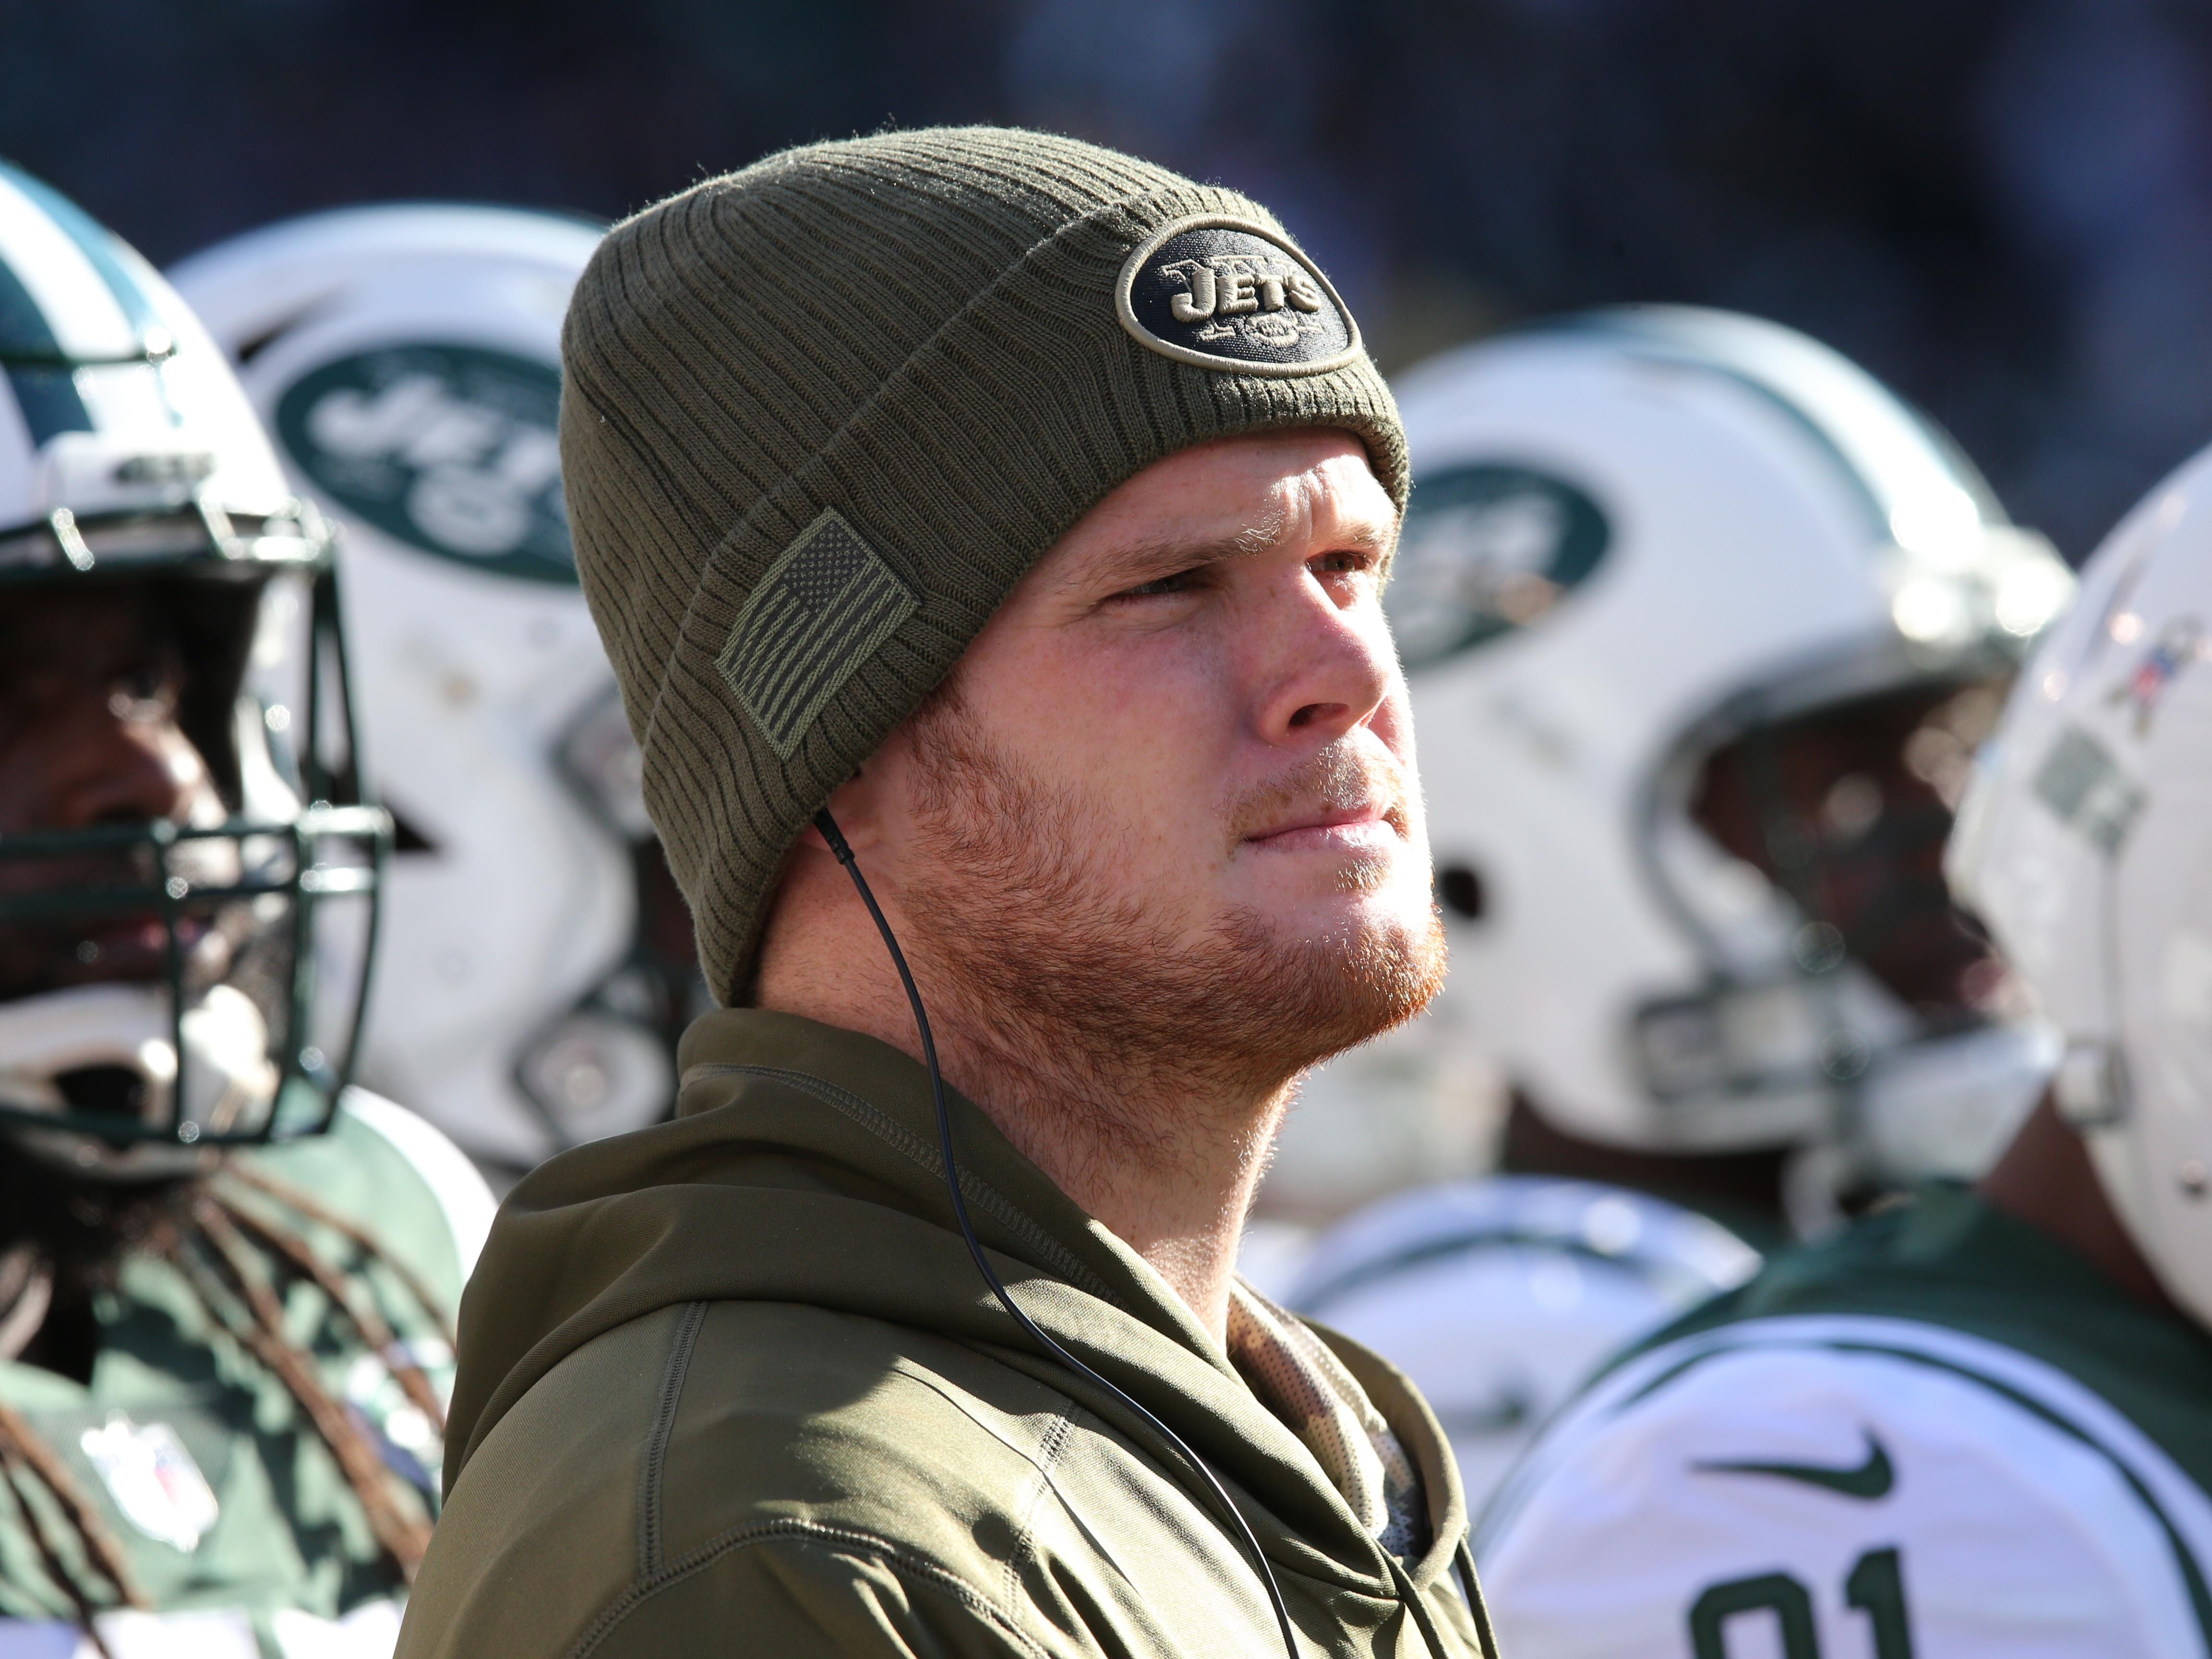 29. Jets (26): They have to weigh Sam Darnold's health against loss of valuable game repetitions ... but while operating suspect attack. Tough dilemma.